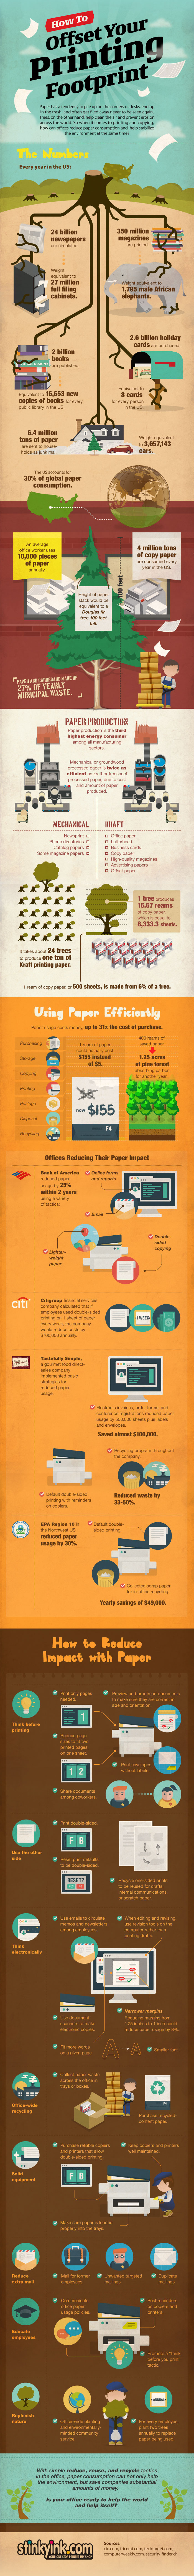 How to Offset Your Printing Footprint, Reduce Paper Usage and Save More Trees - Infographic